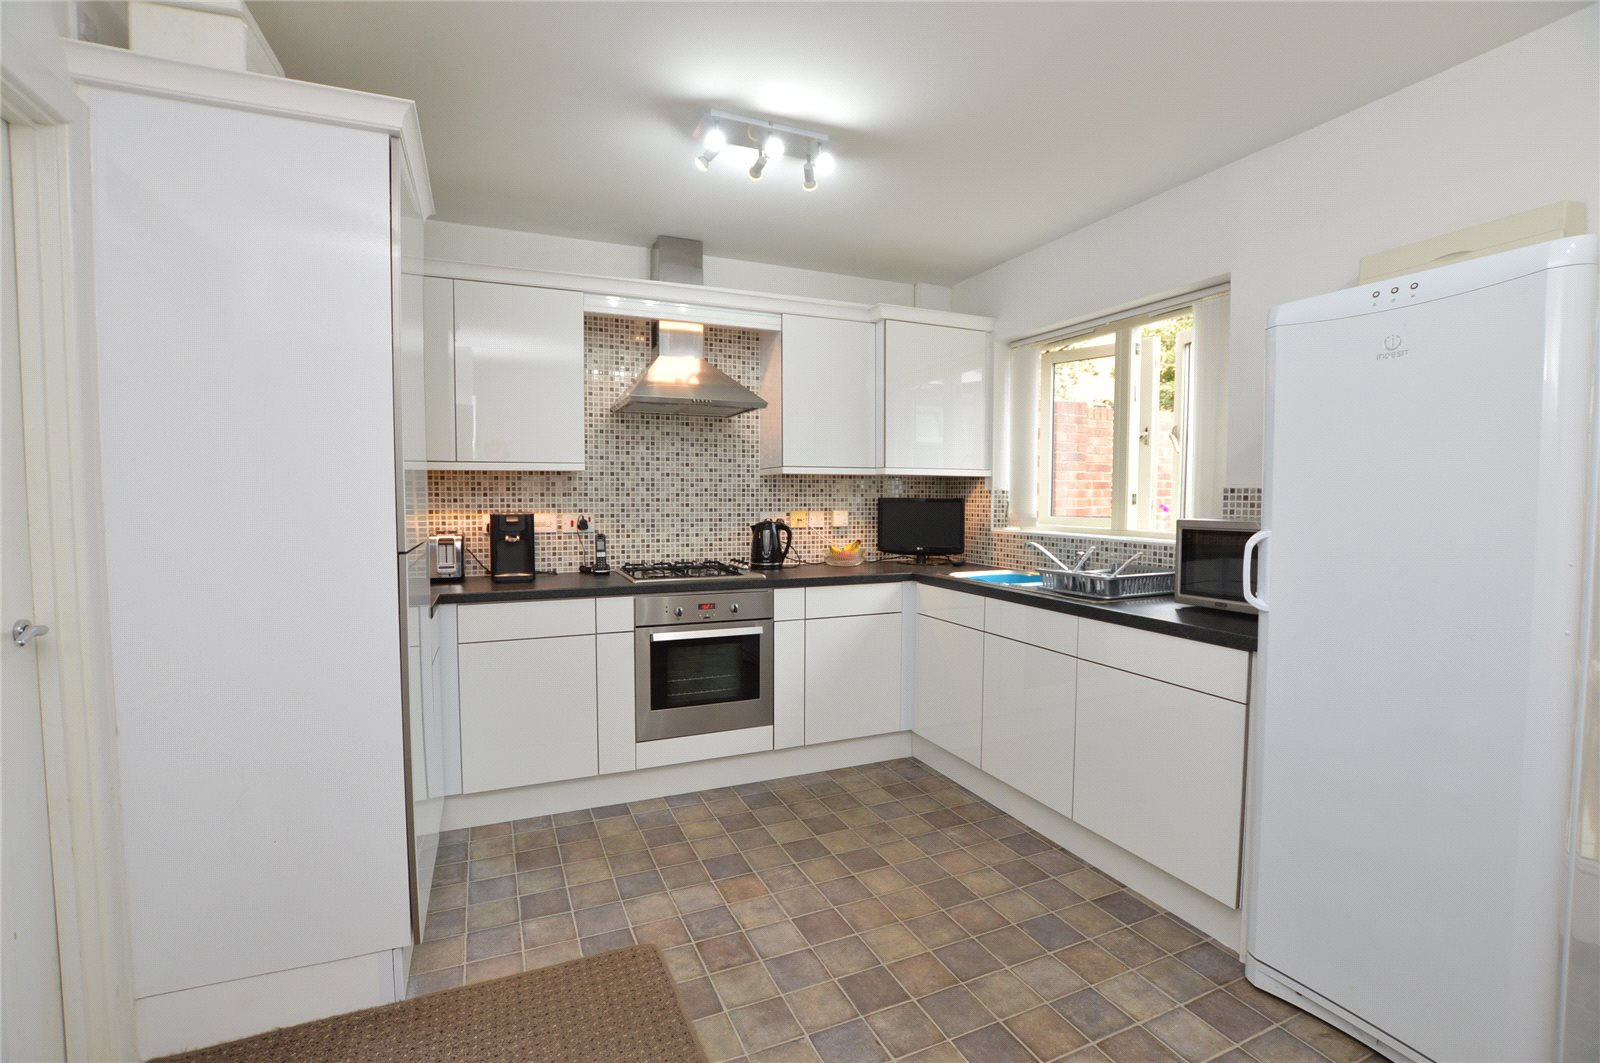 Property for sale in Alllerton Bywater, modern fitted kitchen, white and neutral finish